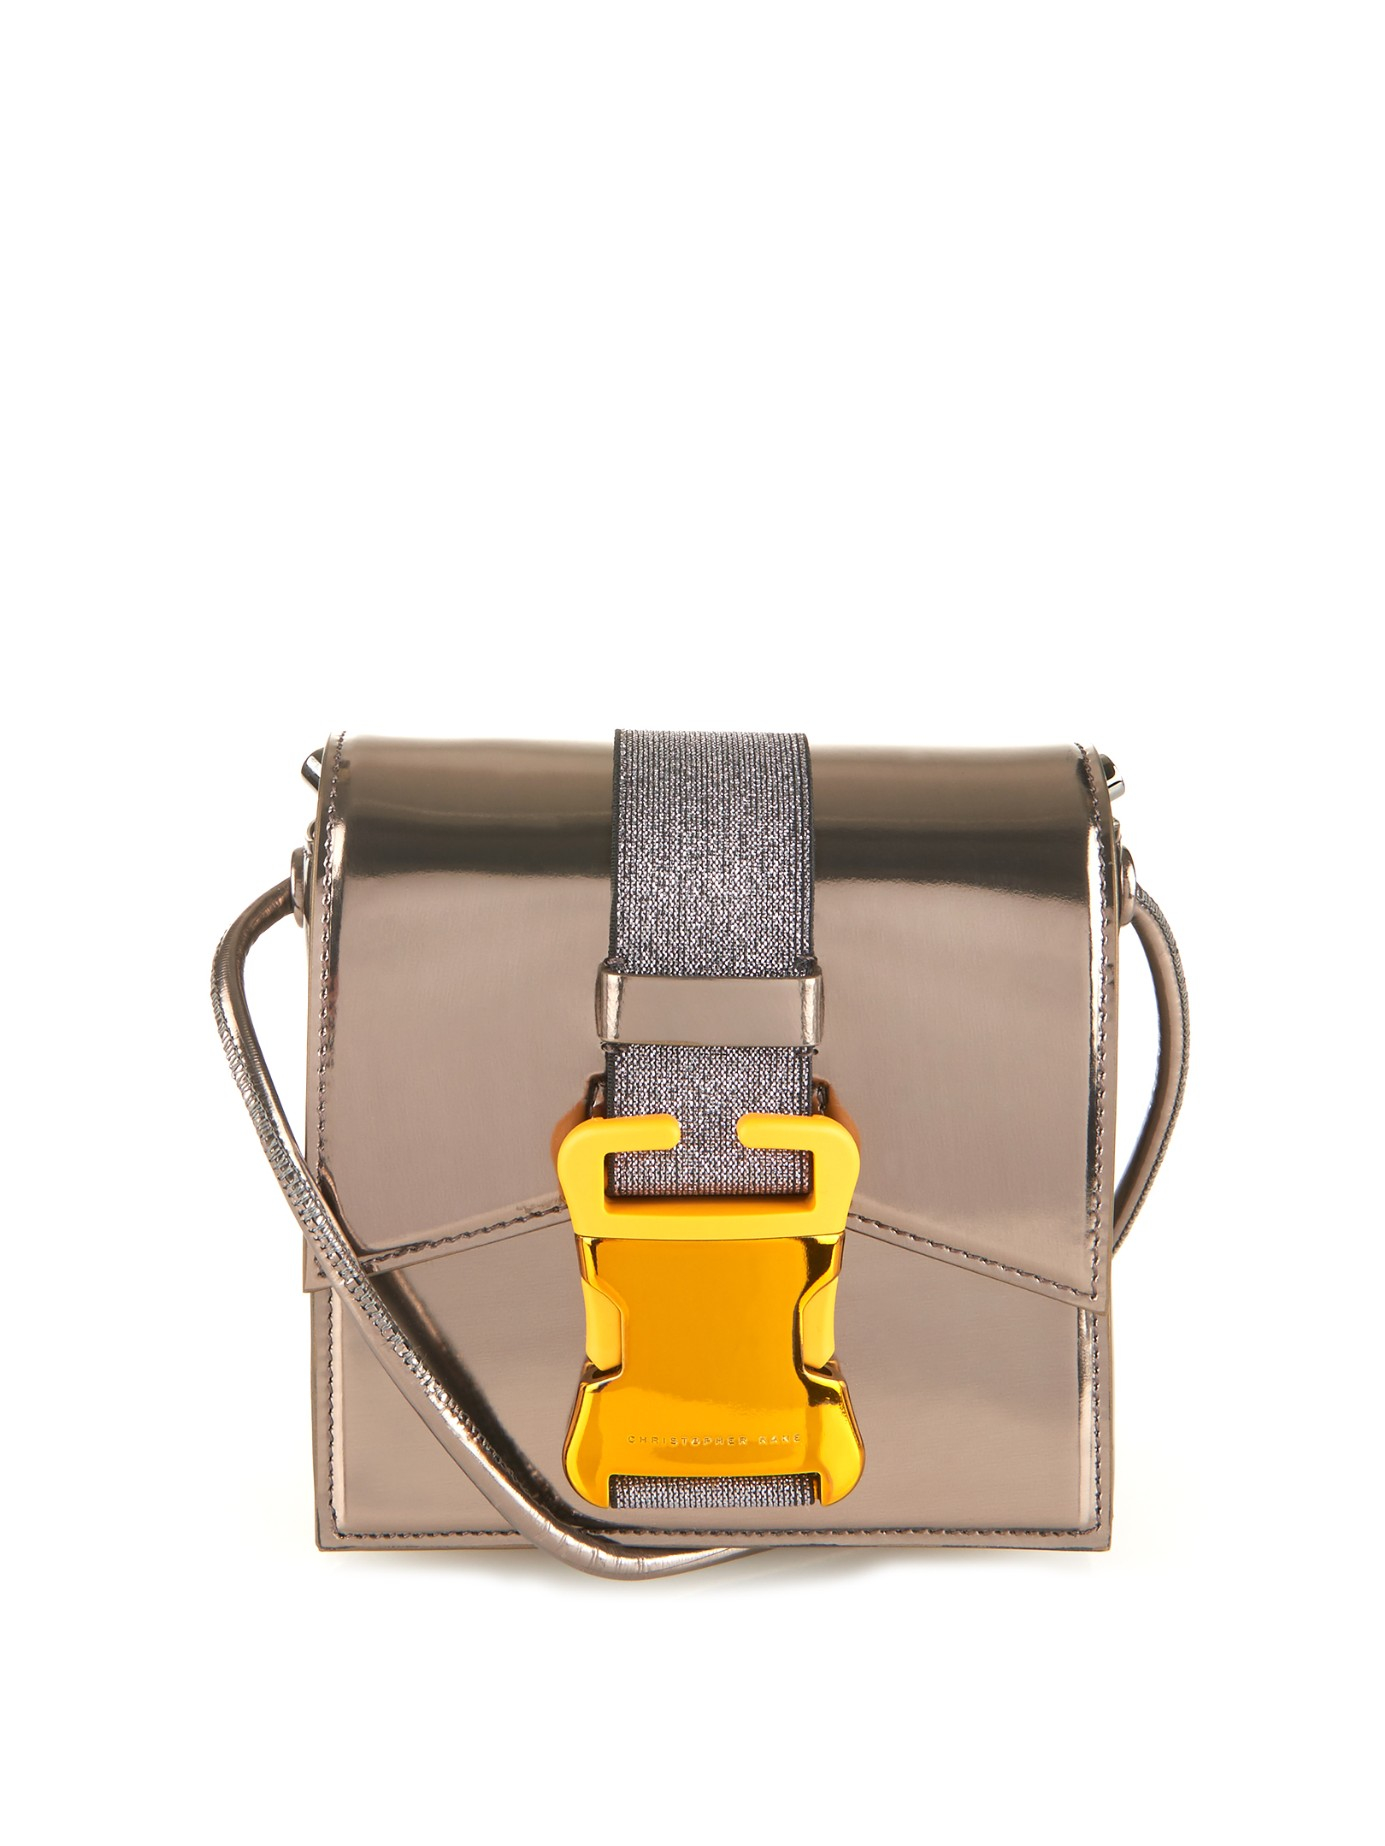 BAGS - Cross-body bags Christopher Kane mu2BGW0Ij6